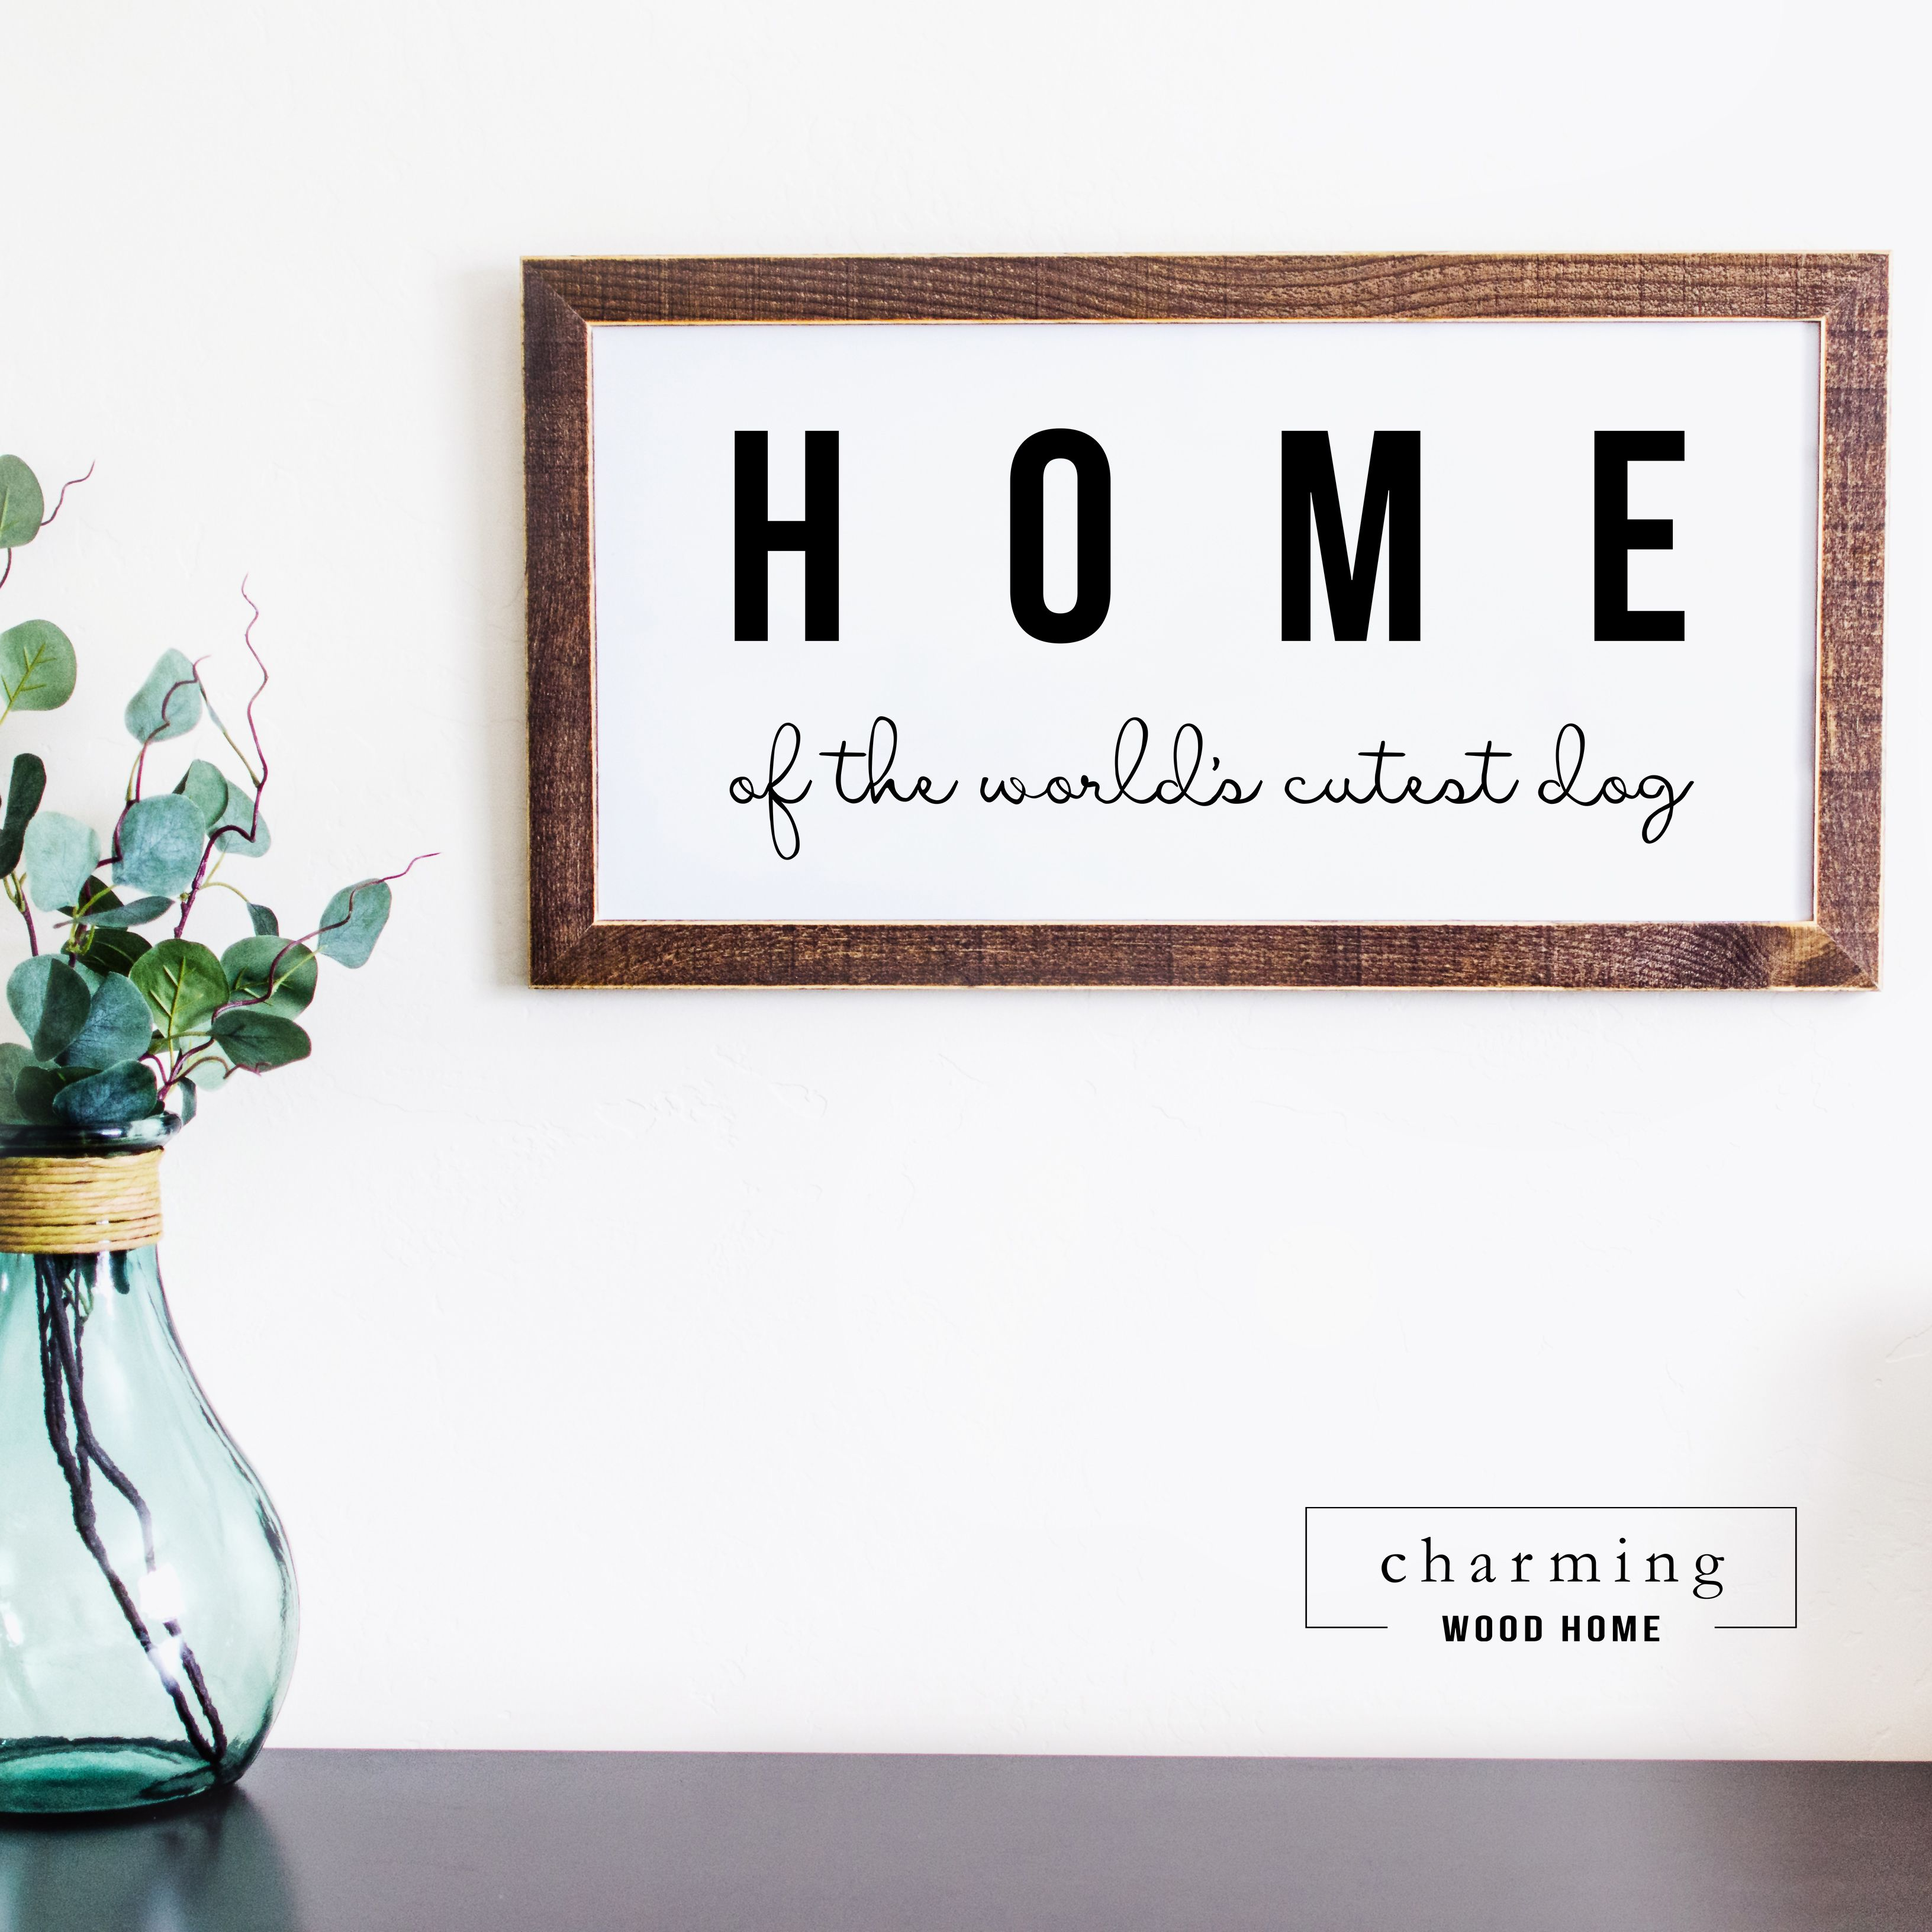 Home Of The World's Cutest Dog Wood Framed Printed Sign